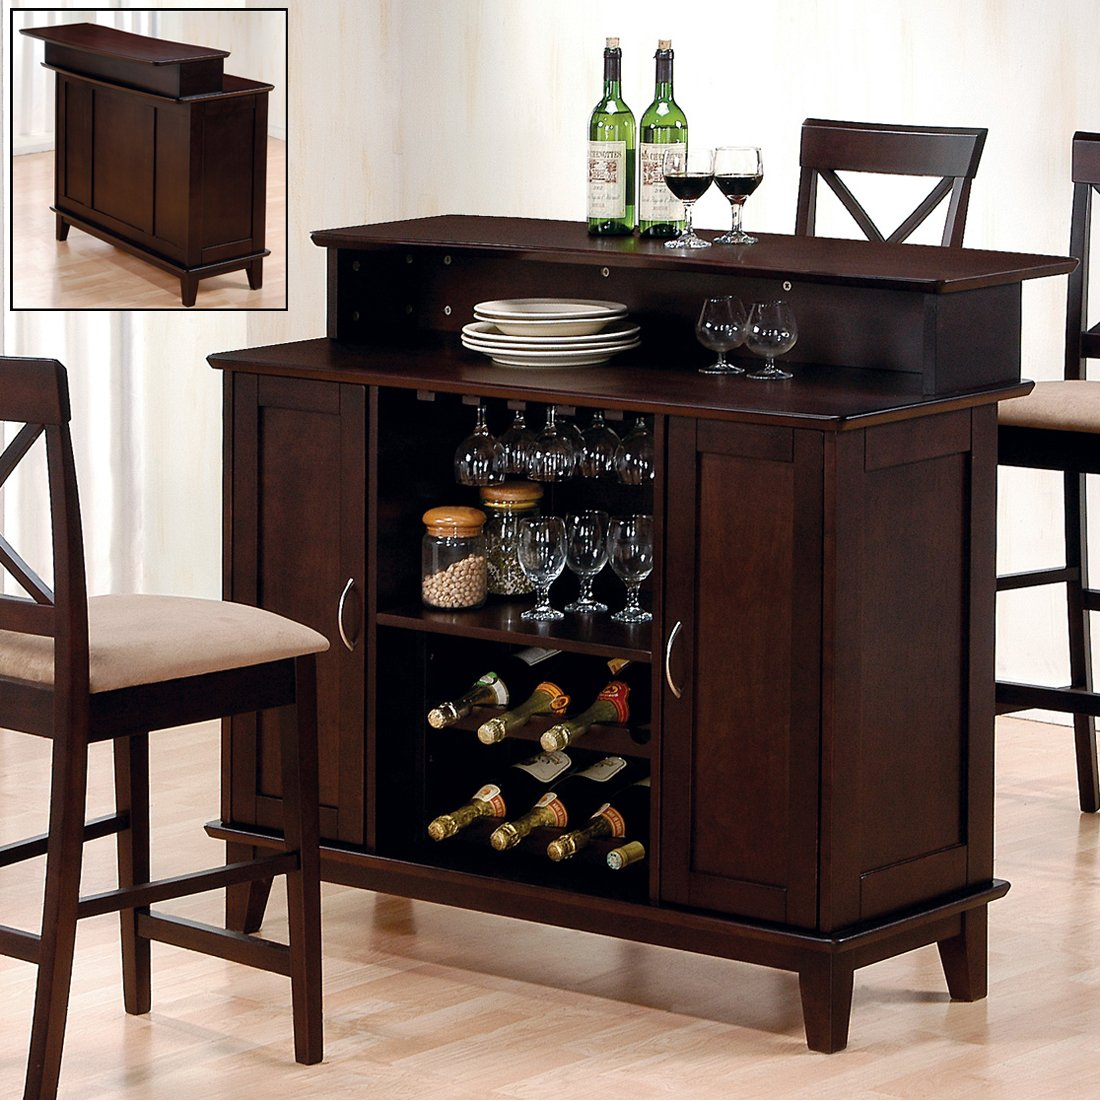 Small bar furniture for apartment best decor things for Apartment furniture